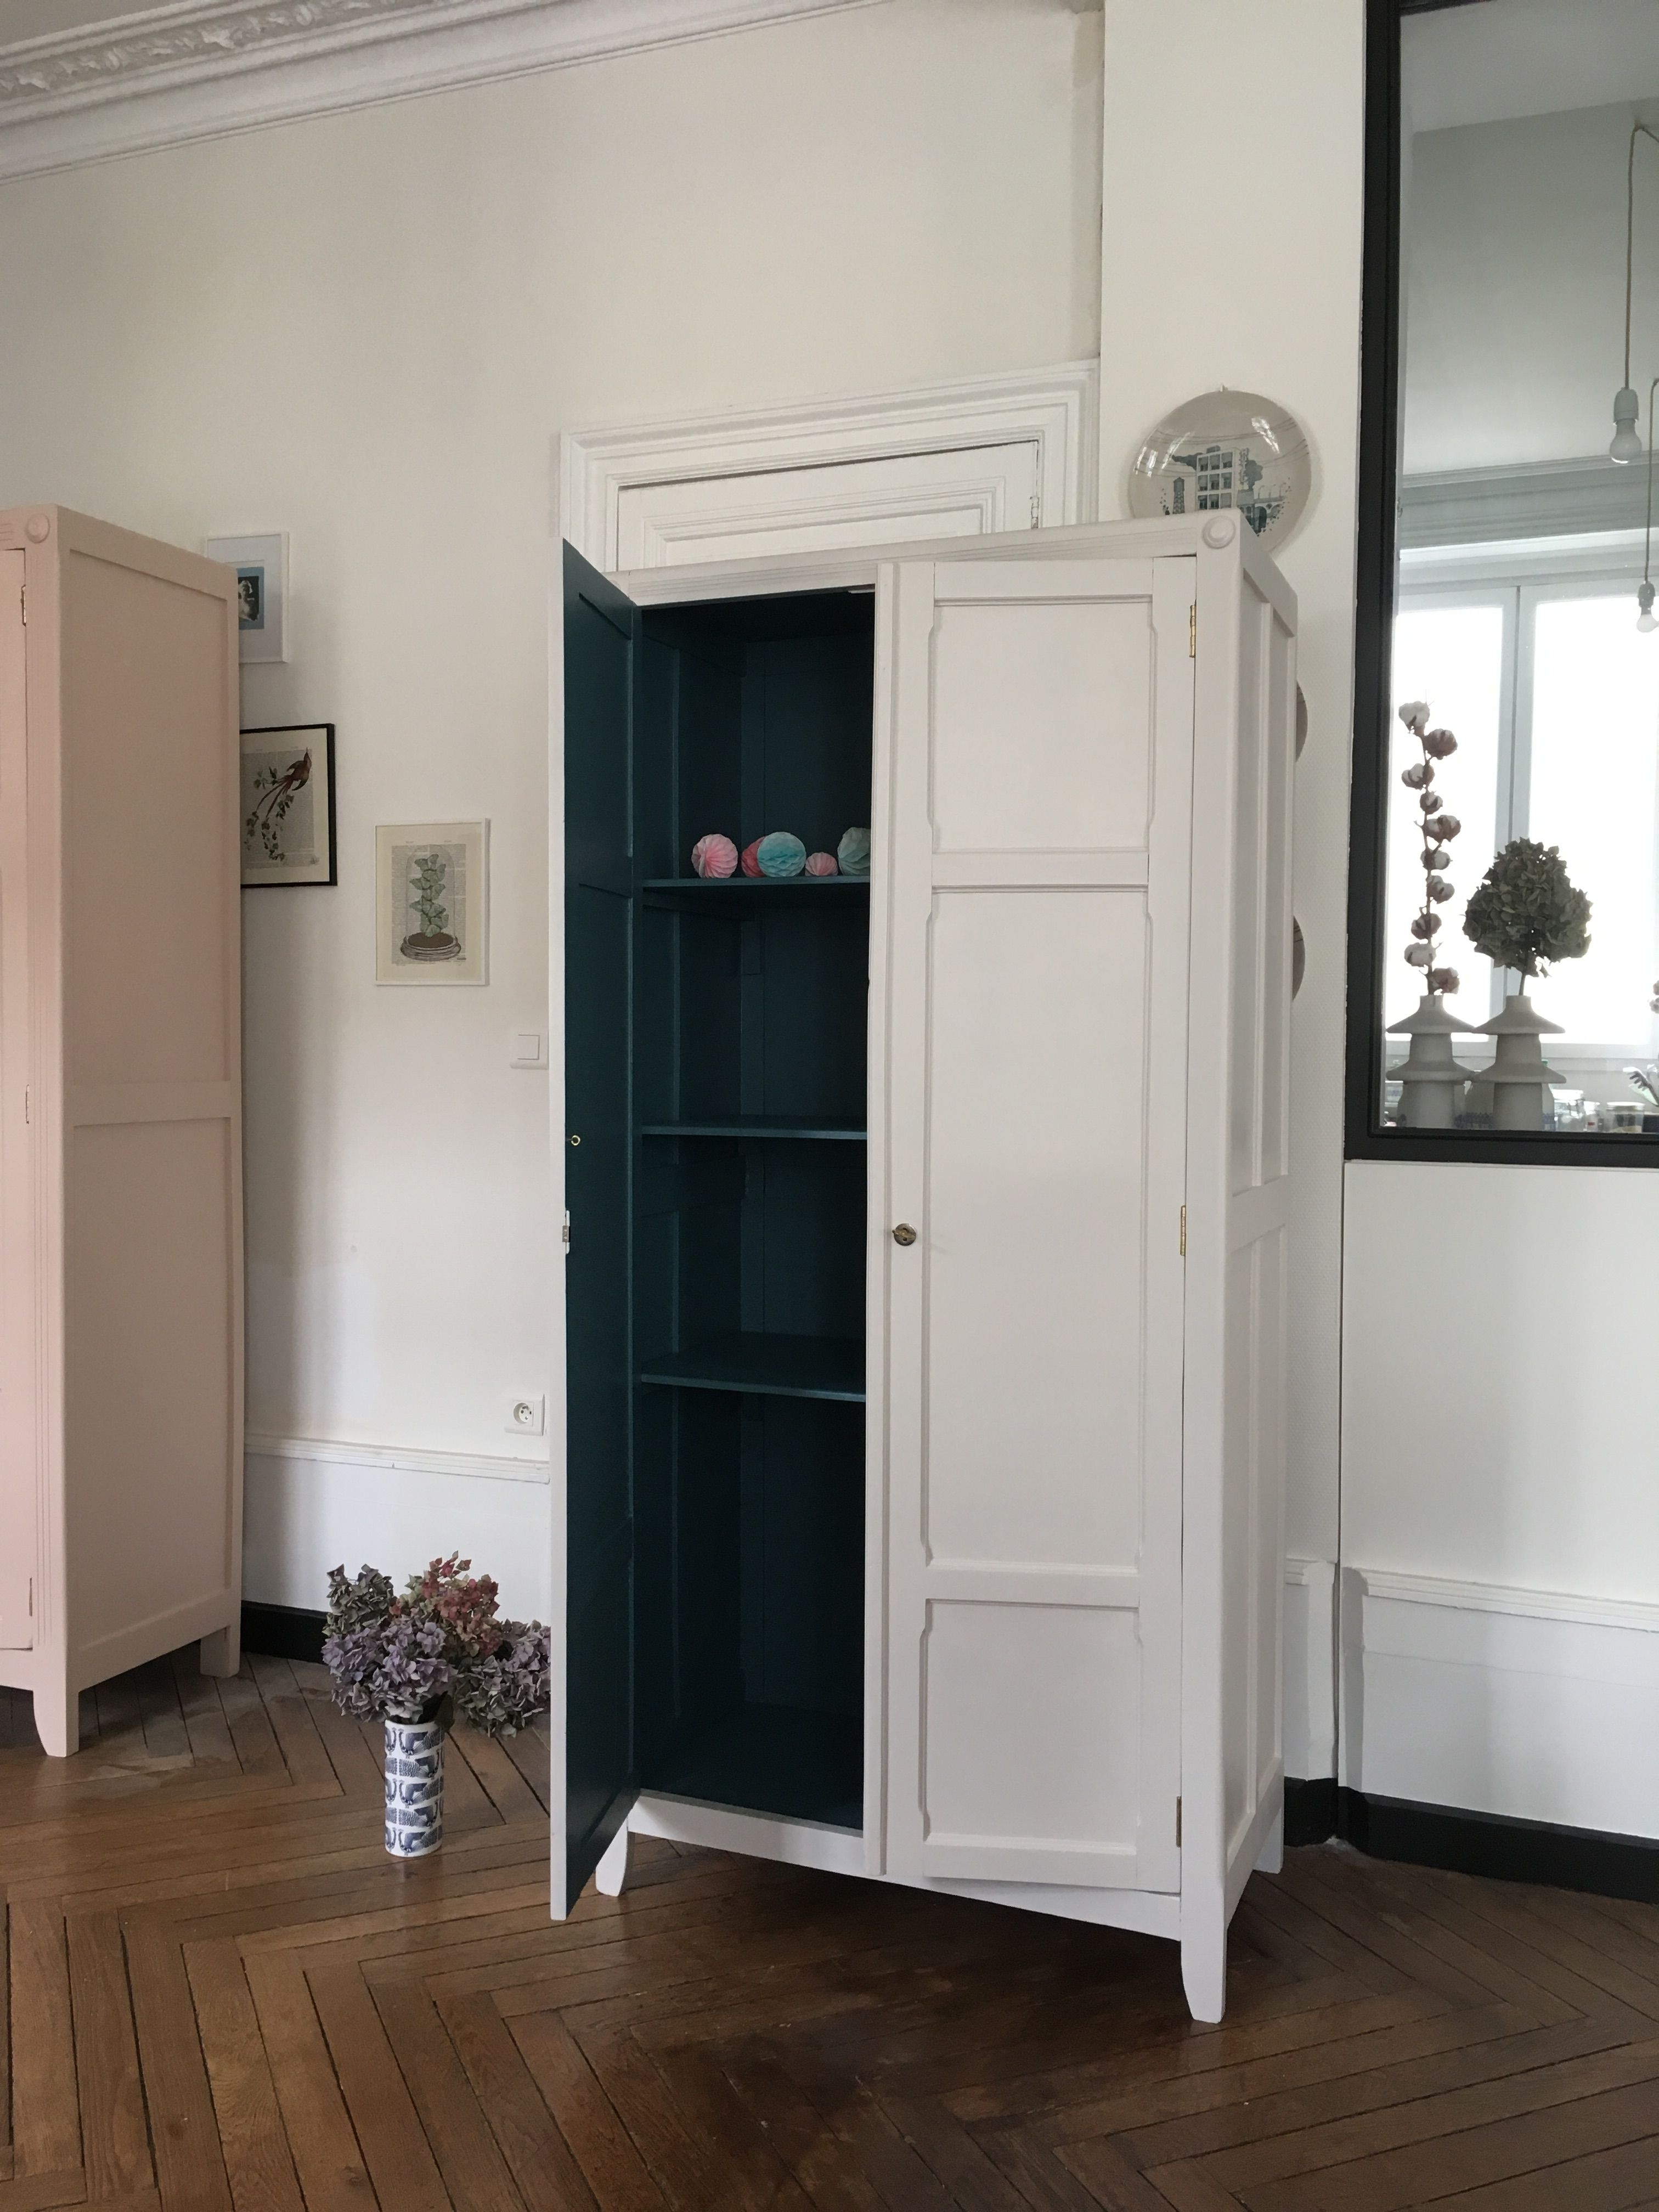 Armoire Parisienne Blanche Magnolia Meubles Vintage Nantes Tall Cabinet Storage Storage Cabinet Furniture